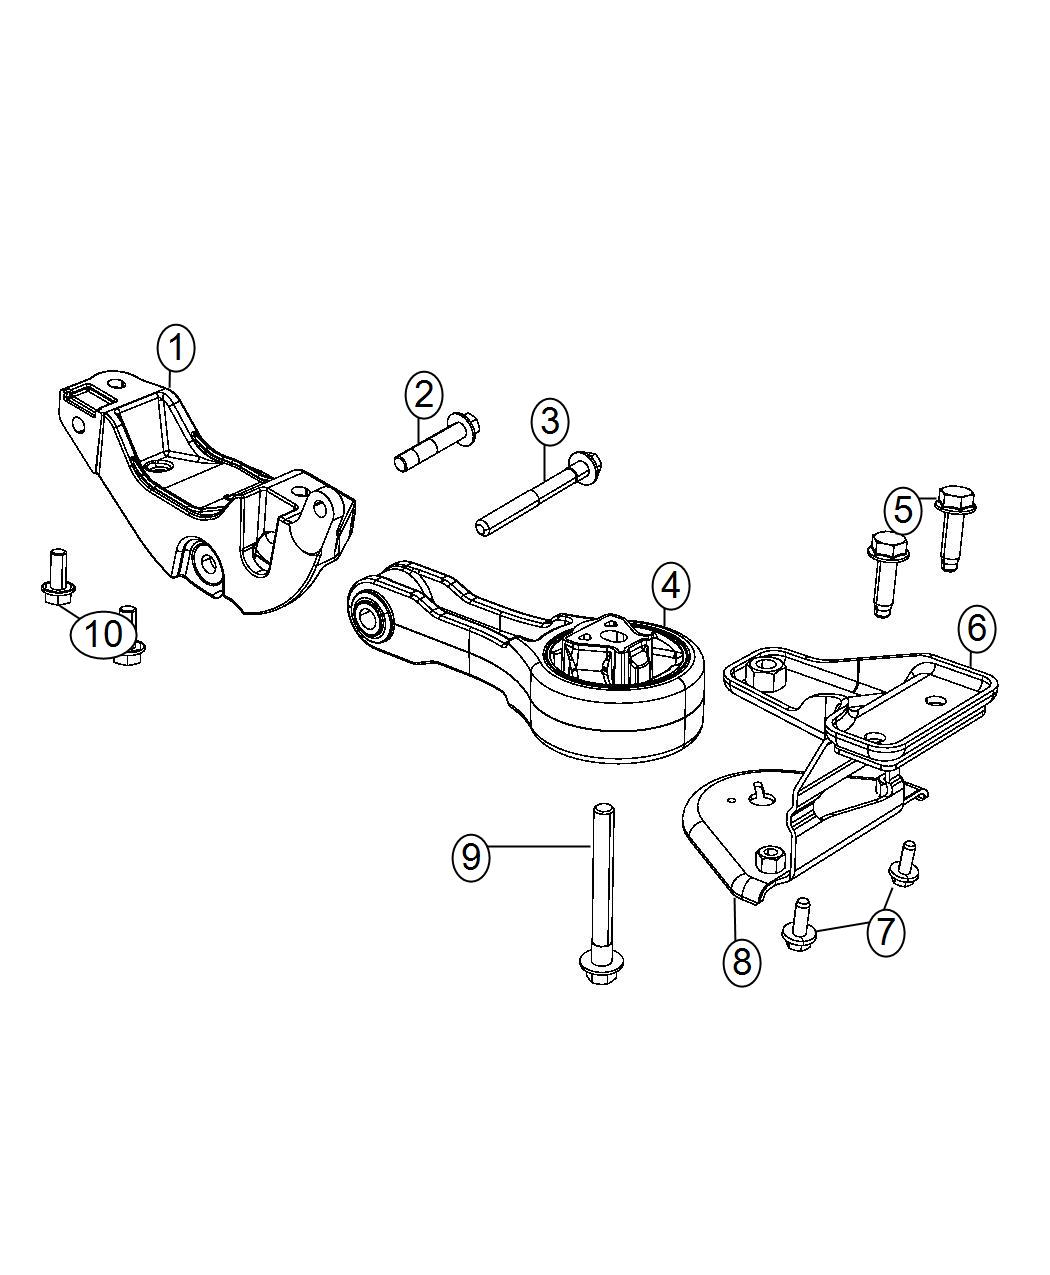 Chrysler 200 Engine Mount Rear Fwd Mounting